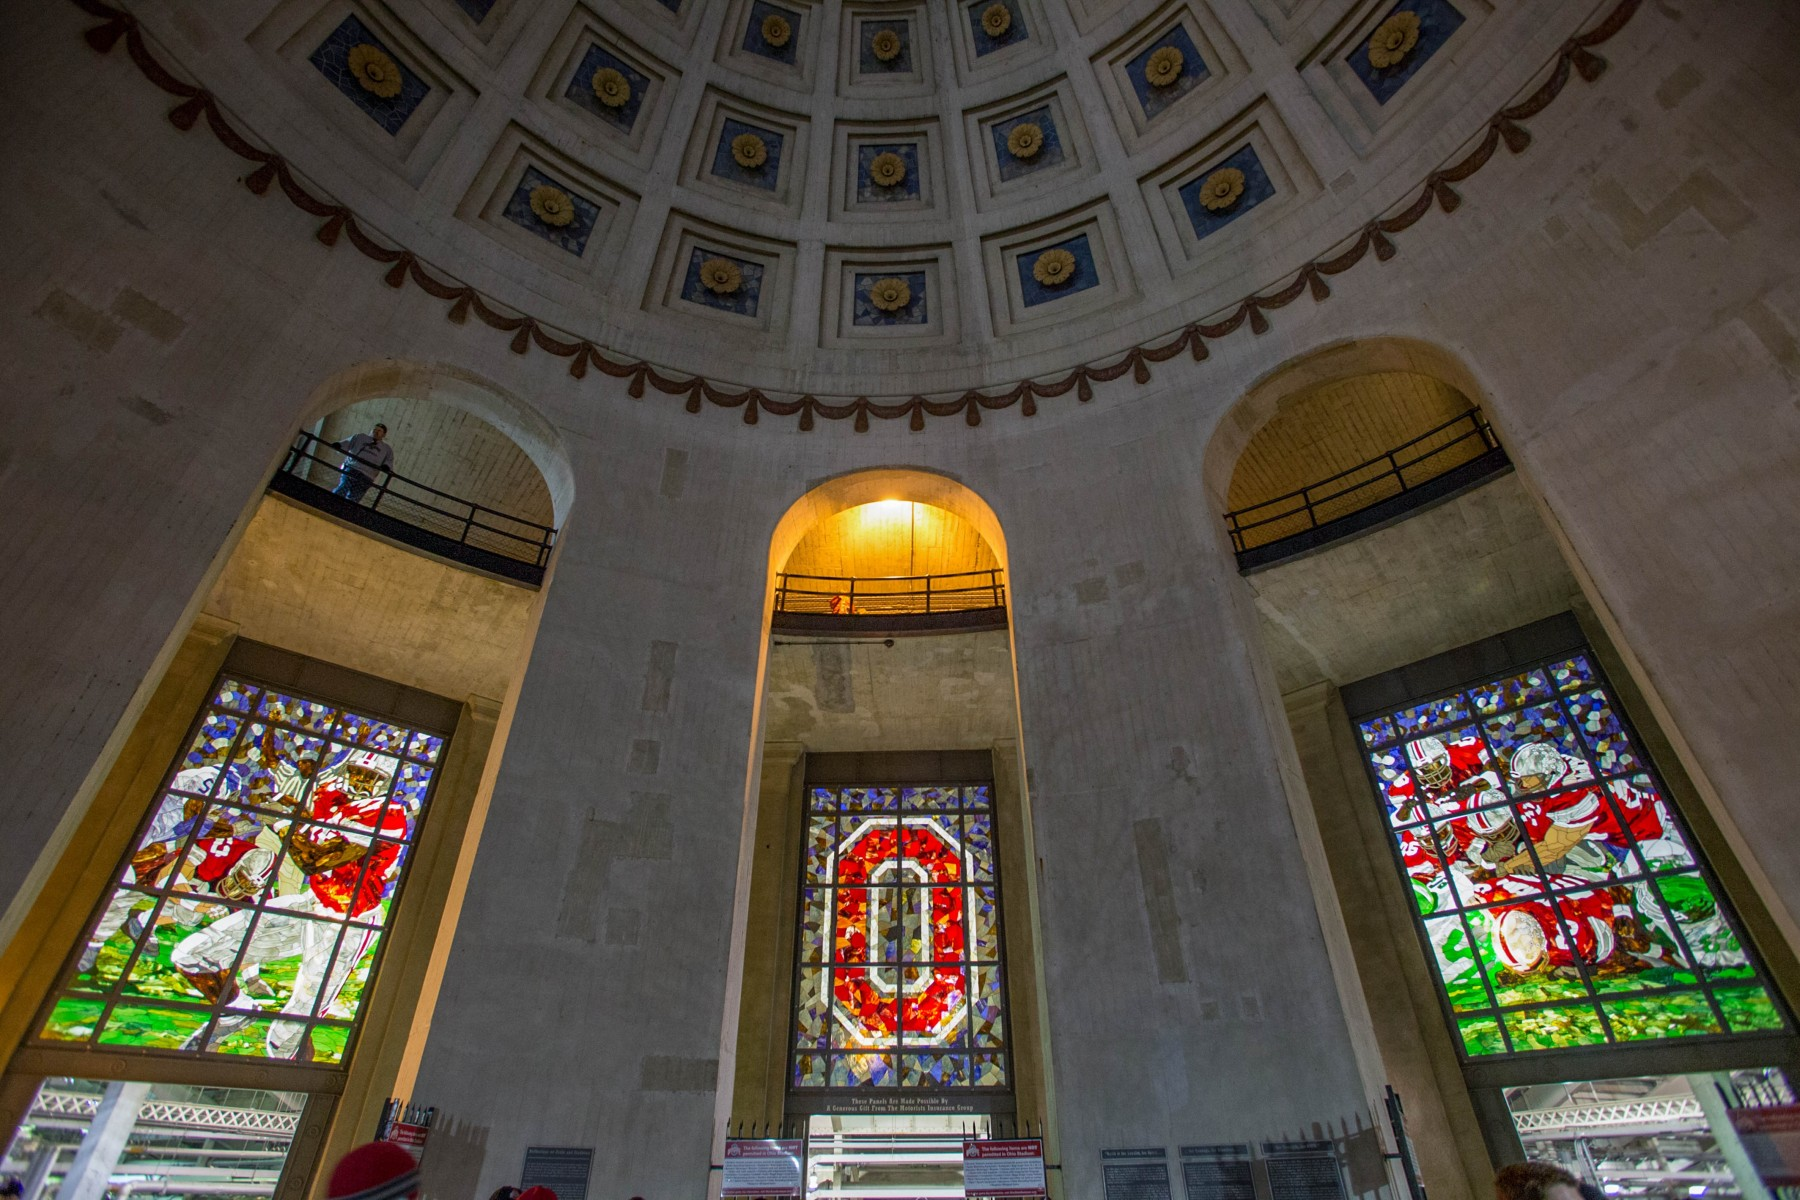 Ohio Stadium rotunda